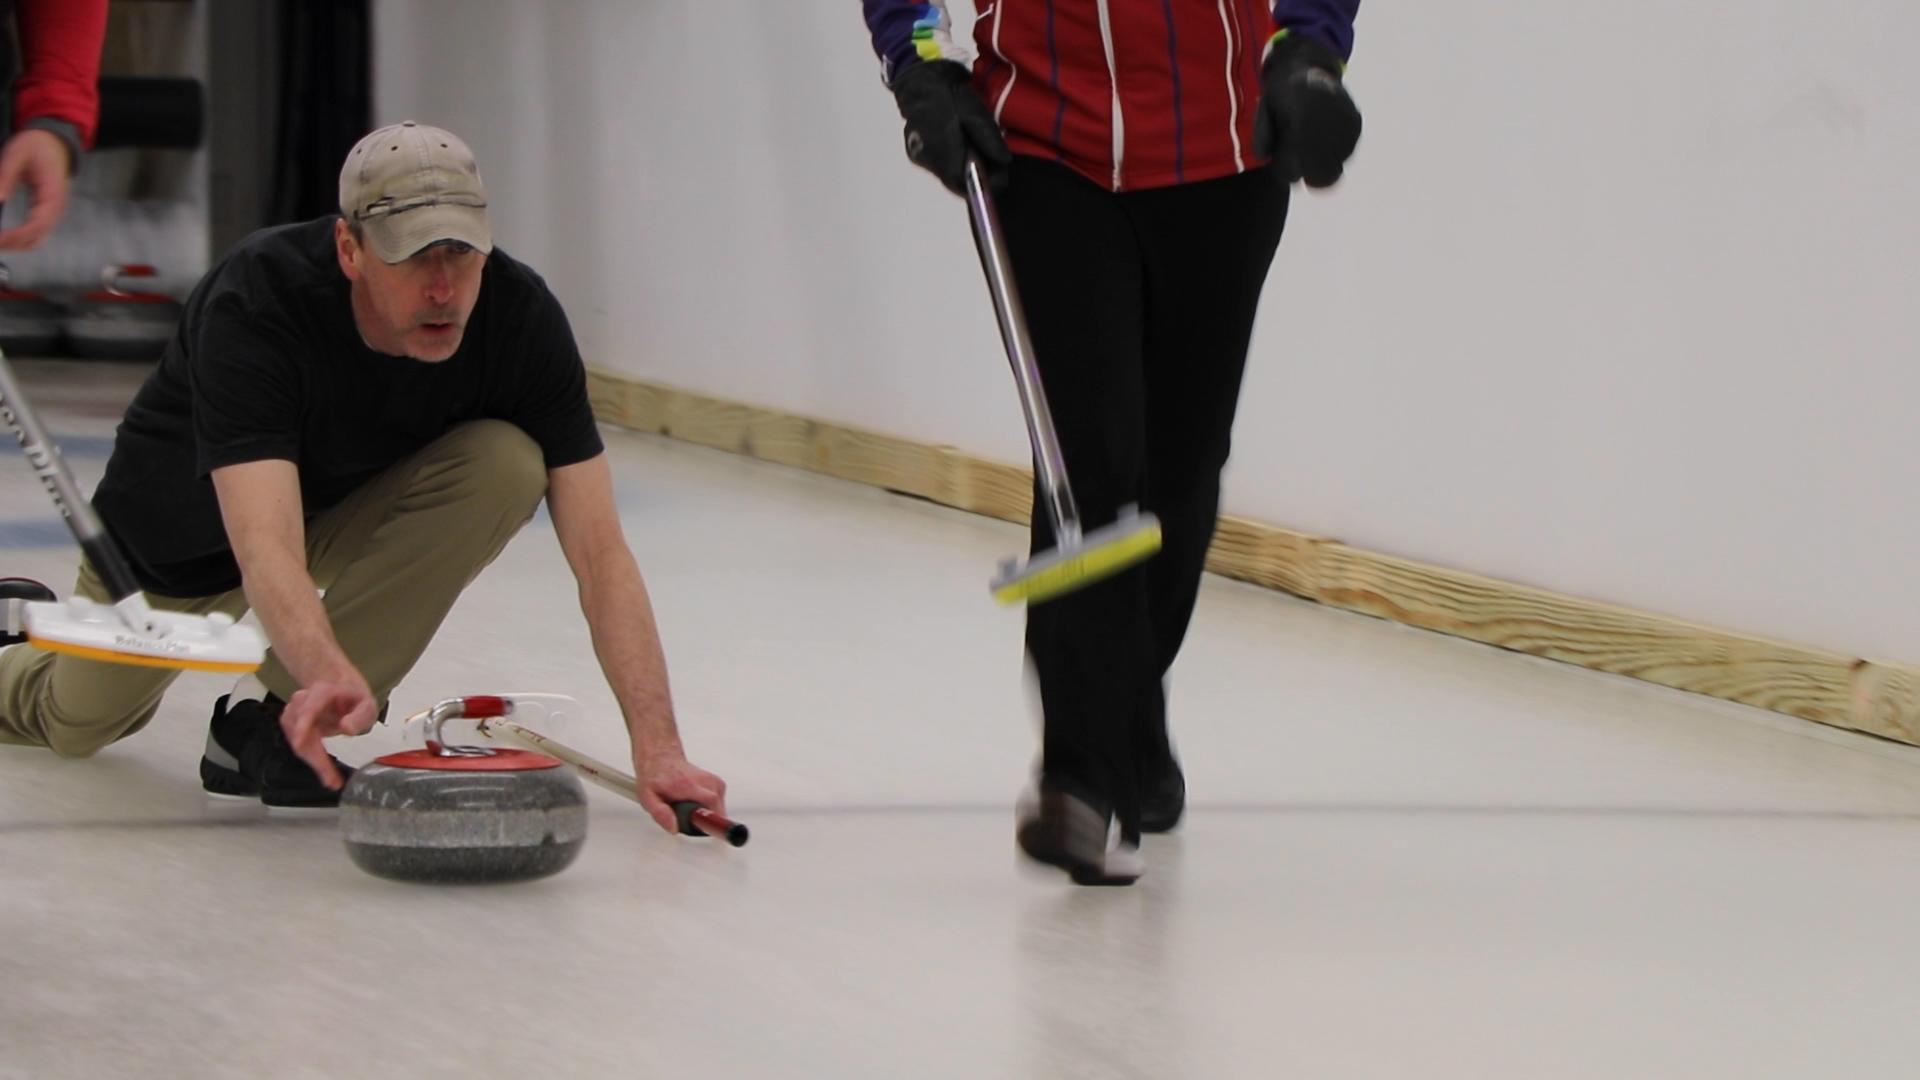 A shooter sends the 42-pound granite curling stone down the sheet of ice. (Evan Garcia / WTTW News)